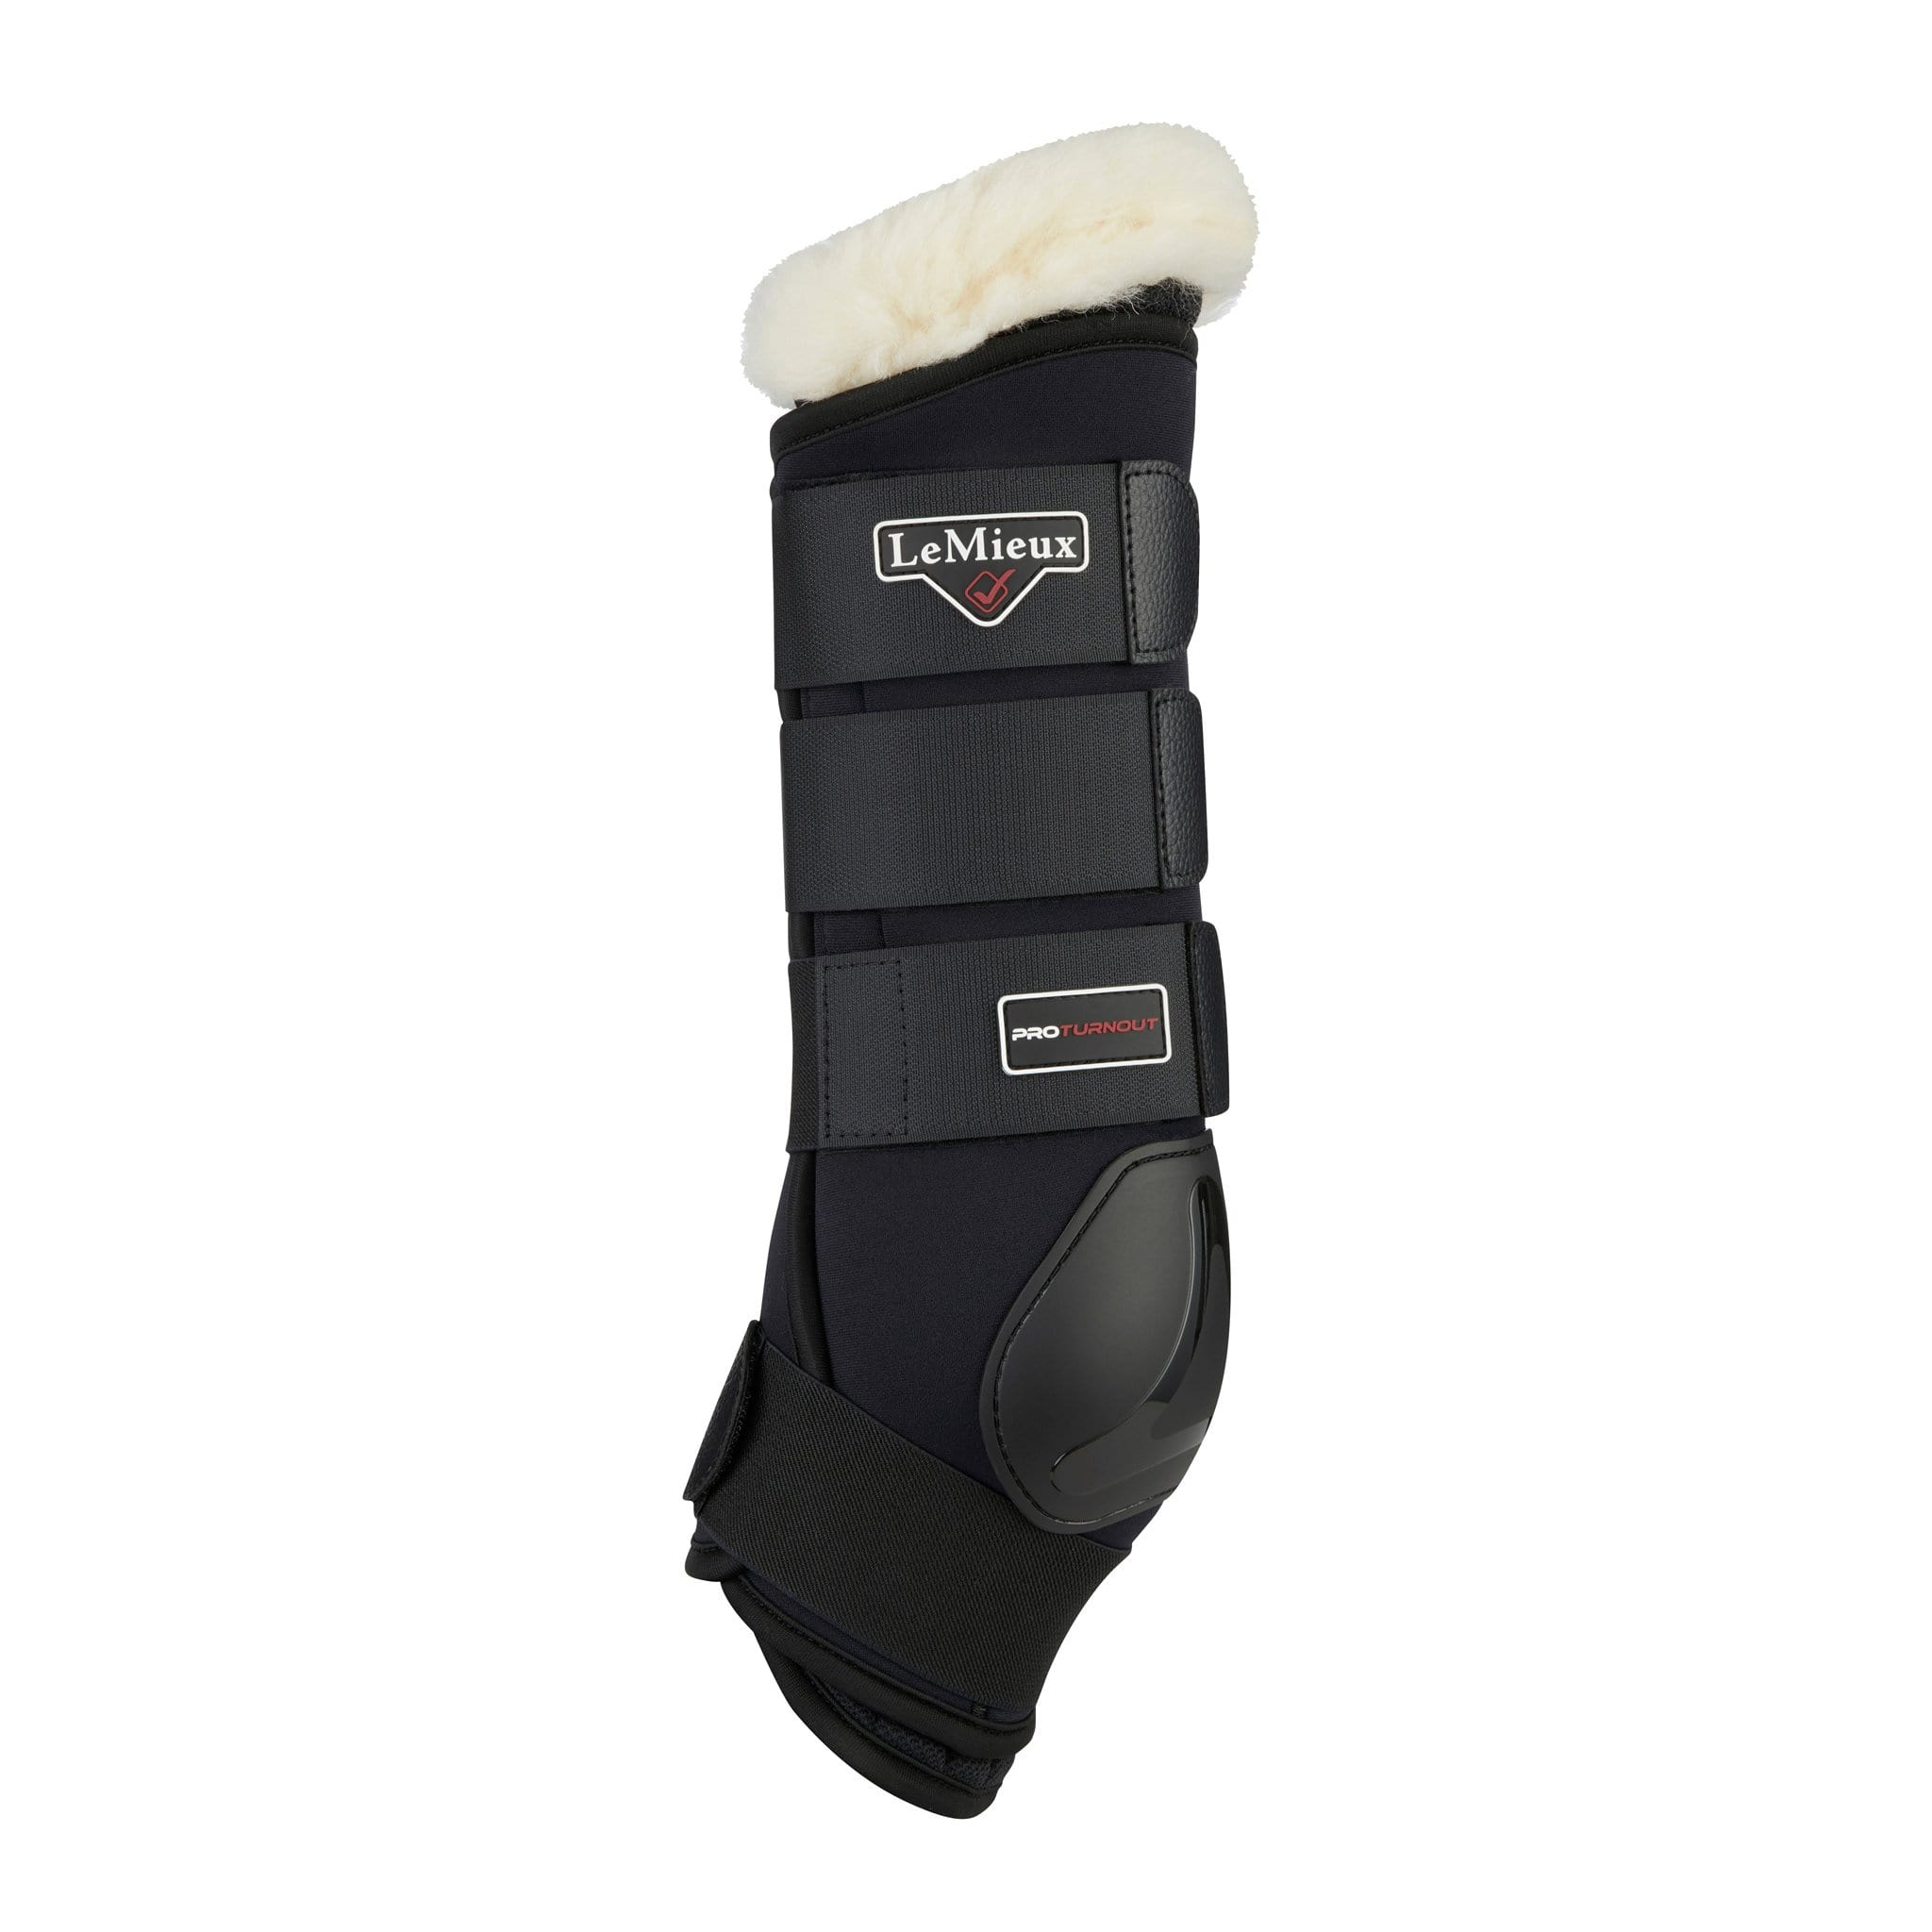 LeMieux Protector Boots Black 6192 Outside